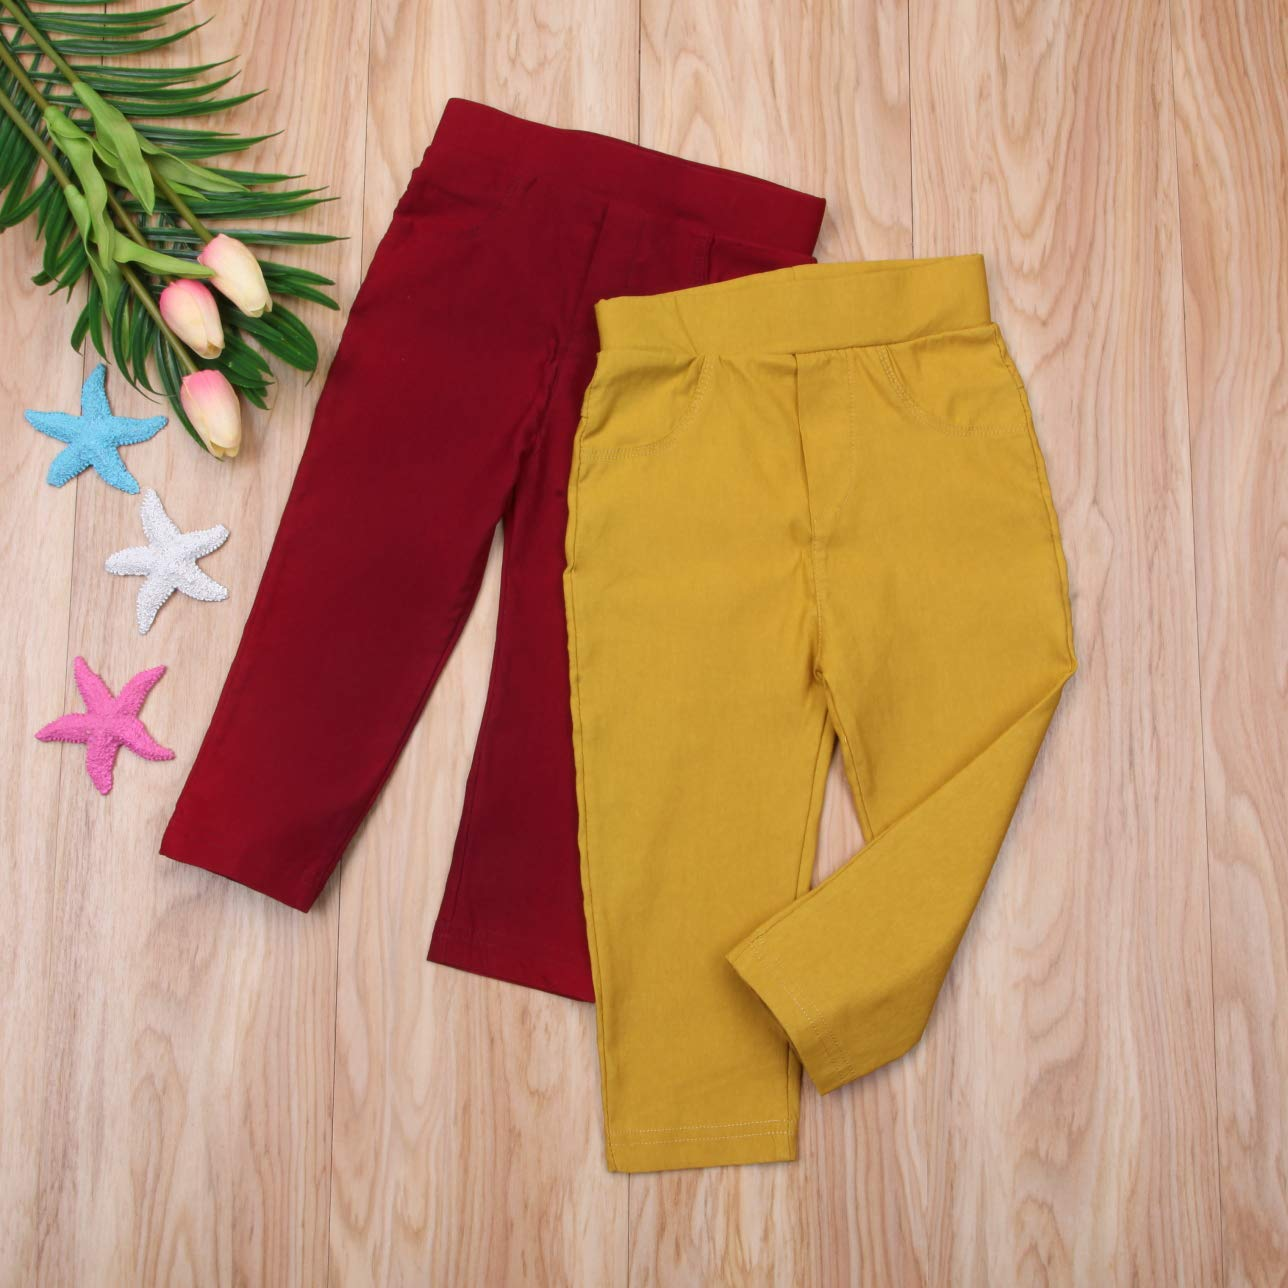 ITFABS Kids Baby Boy Girls Pants Clothes Solid Long Pants Trousers Leggings Elastic Casual Capris Bottom Outfit